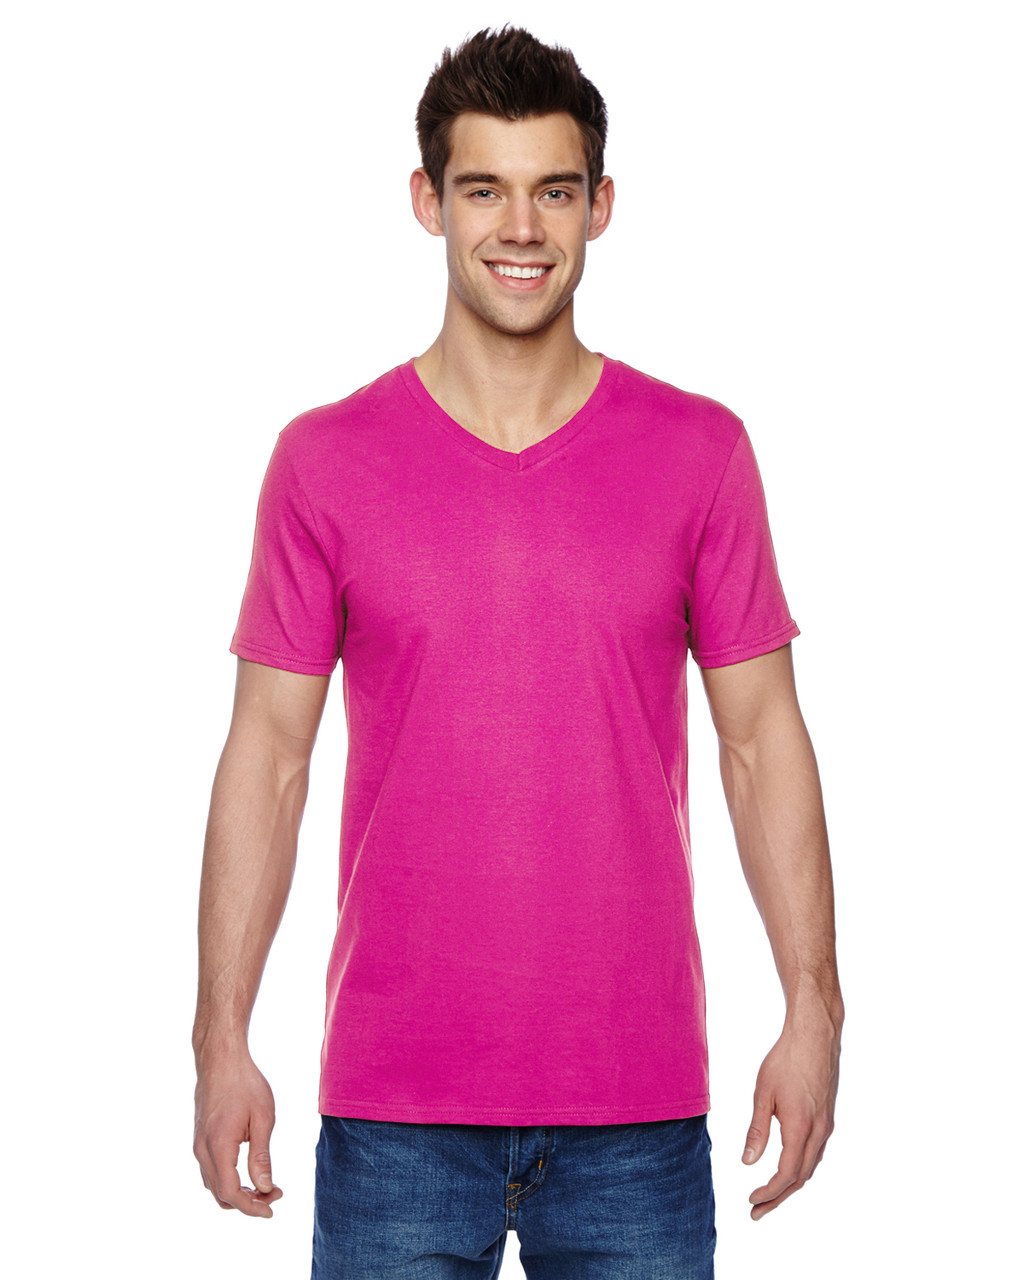 Cyber Pink SFVR Fruit of the Loom 100% Softspun Cotton Jersey V-Neck T-Shirt | Blankclothing.ca